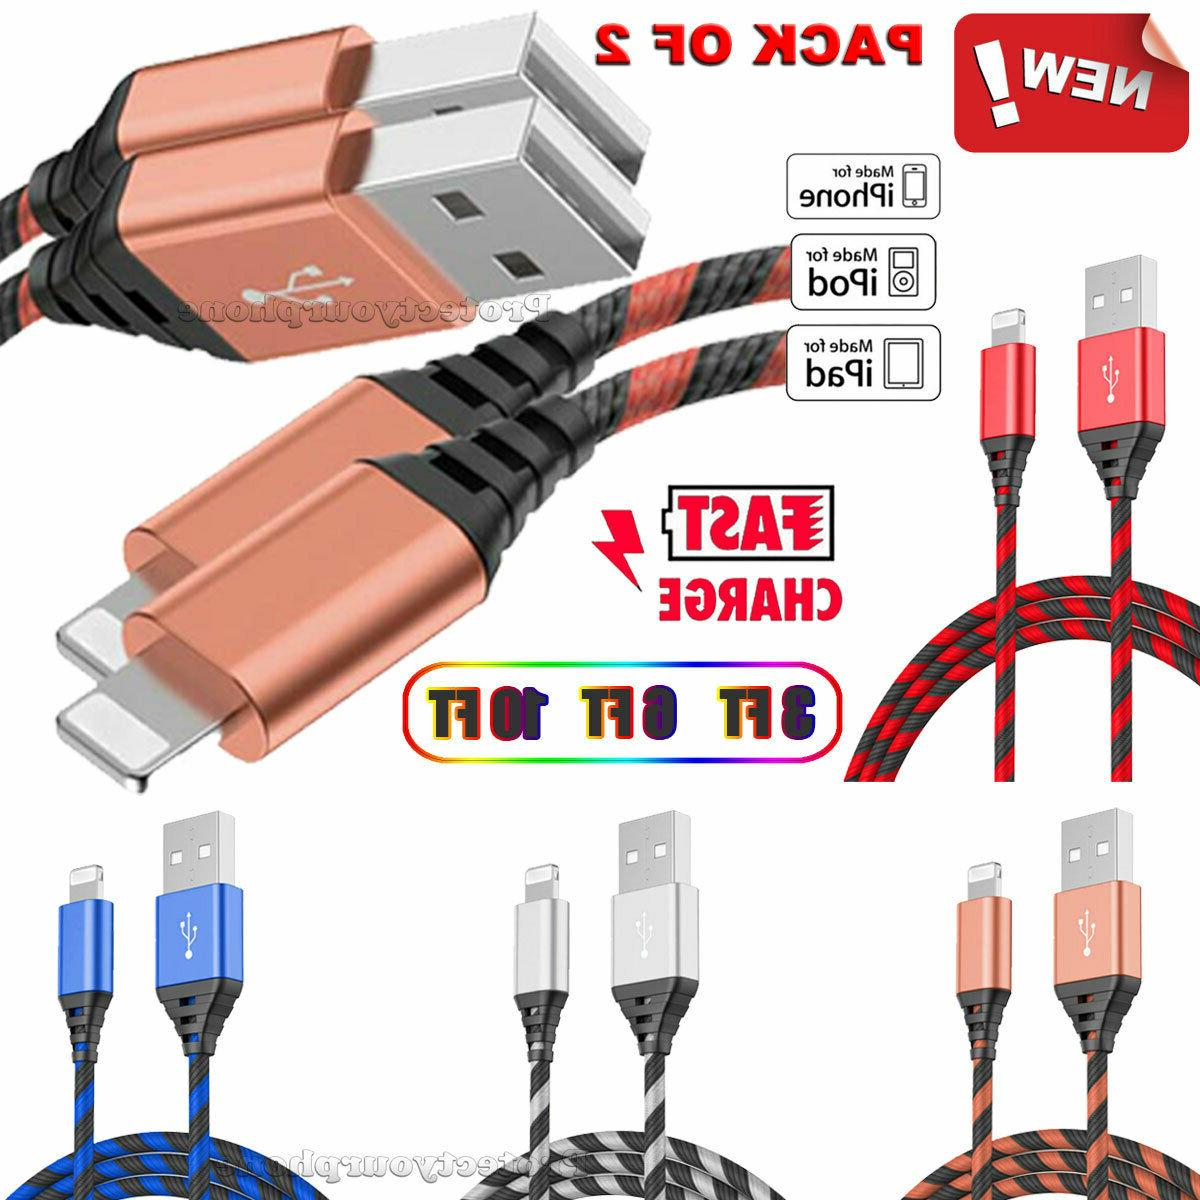 2 pack charging cable charger cord